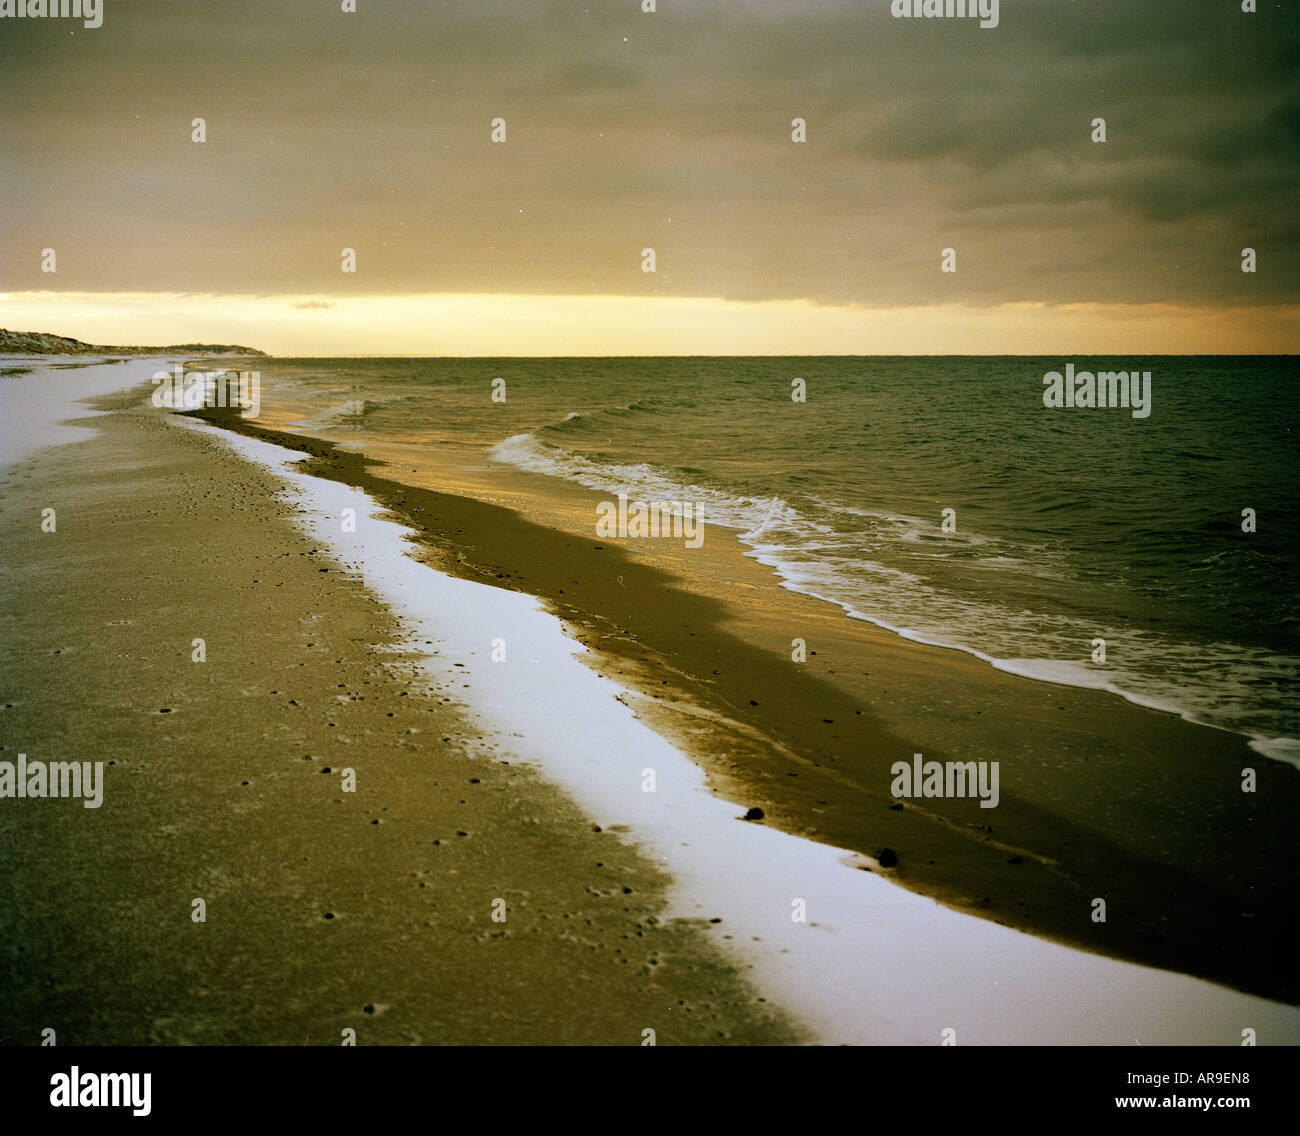 snowy beach on the southeast cost of Sealand Denmark - Stock Image